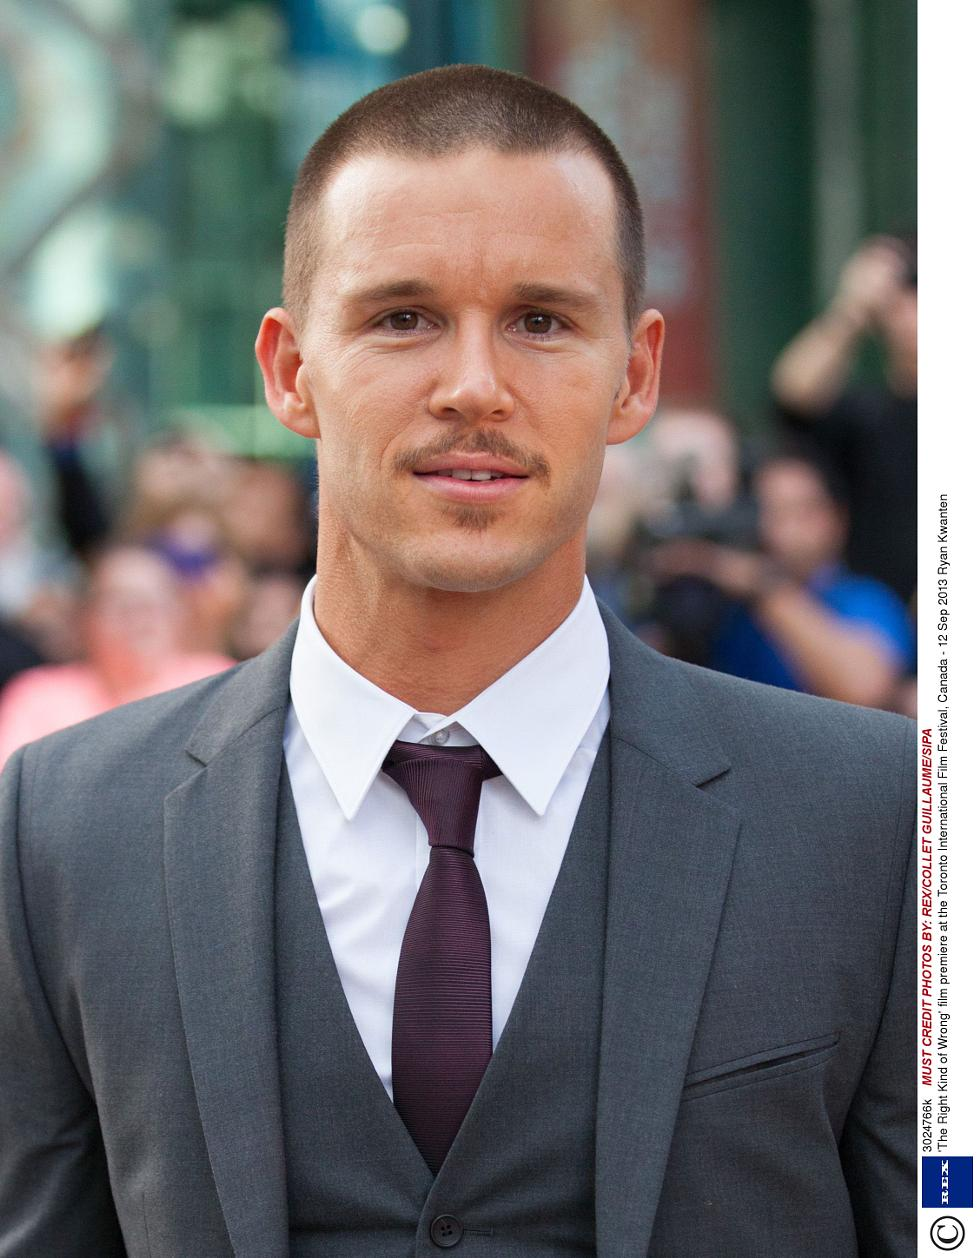 The 41-year old son of father (?) and mother(?), 178 cm tall Ryan Kwanten in 2018 photo